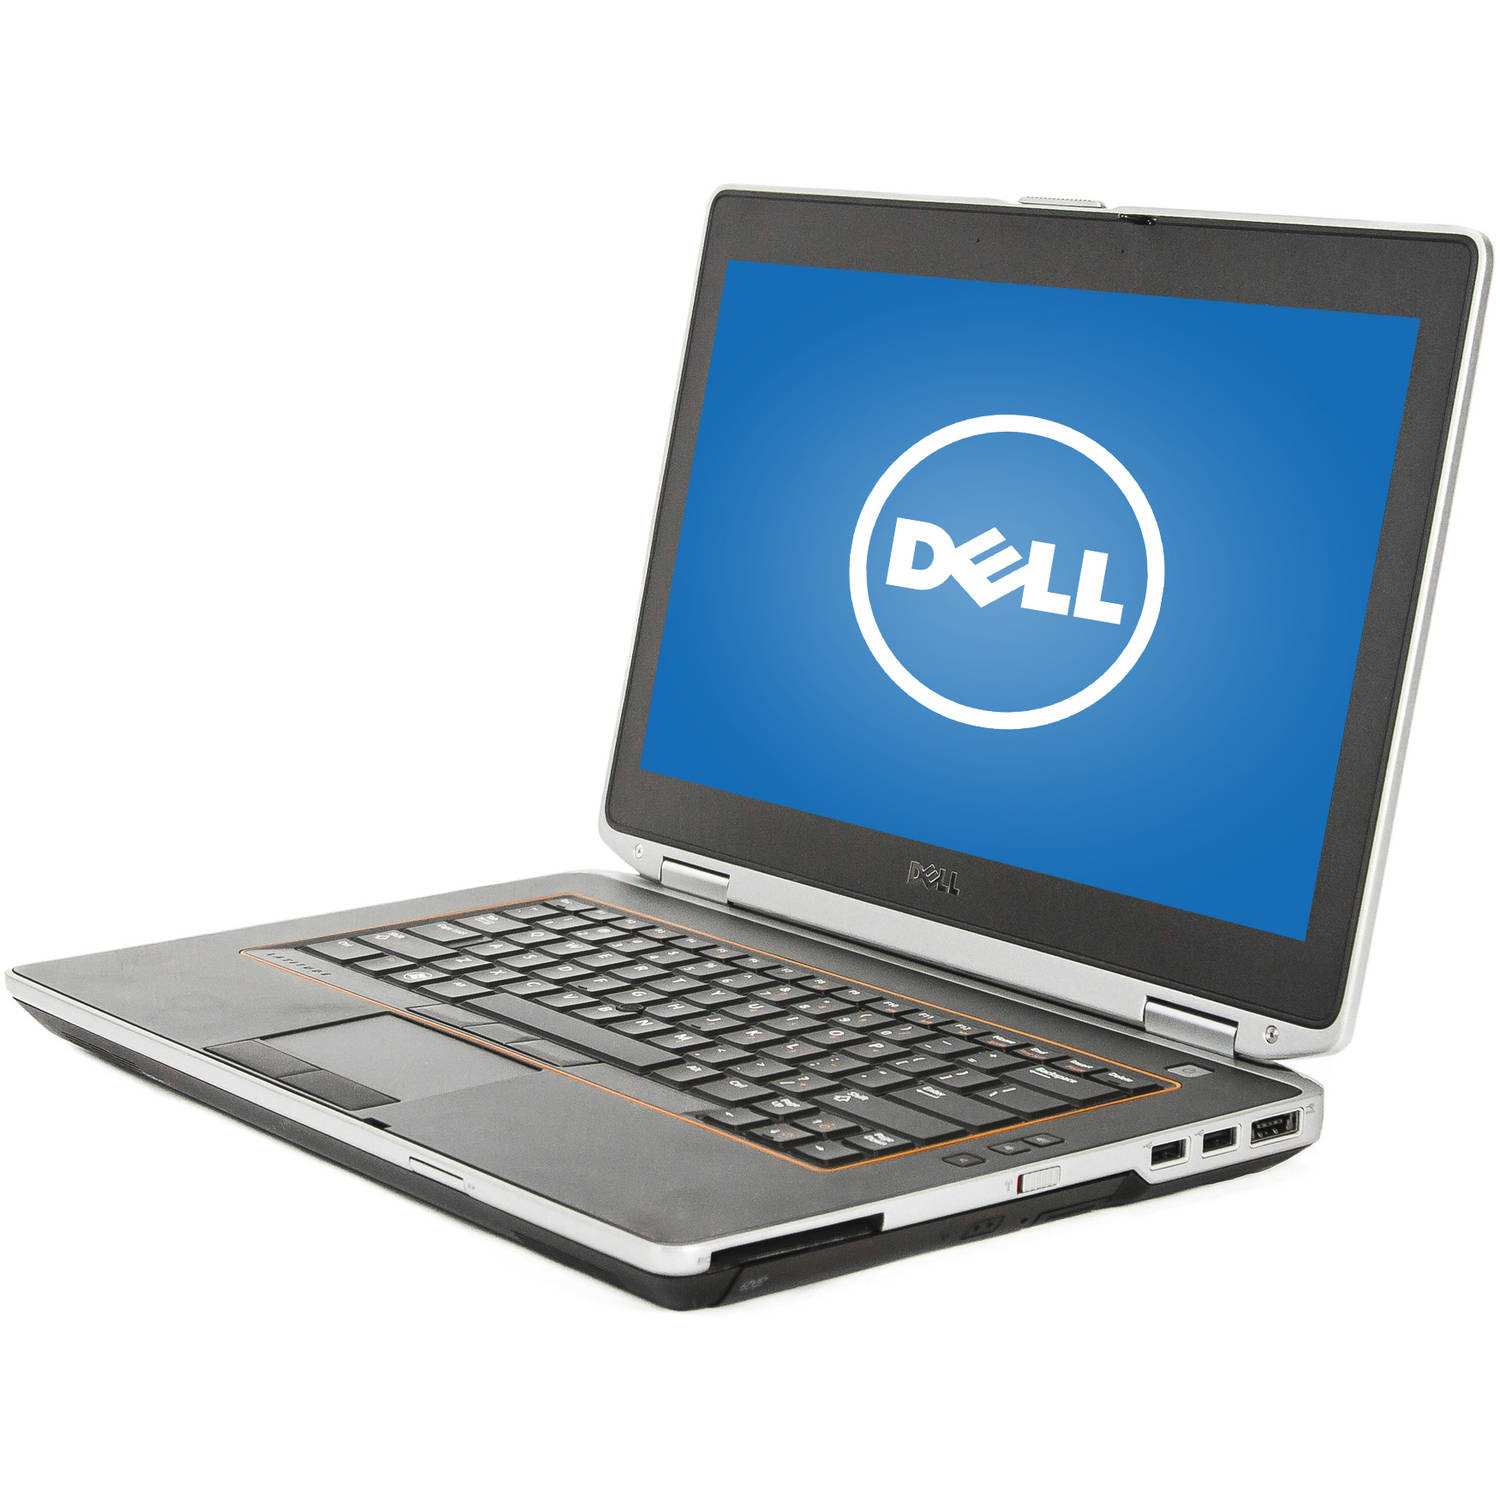 "Refurbished Dell Black 14"" E6420 Laptop PC with Intel Core i5 Processor, 6GB Memory, 500GB Hard Drive and Windows 7 Home Premium"